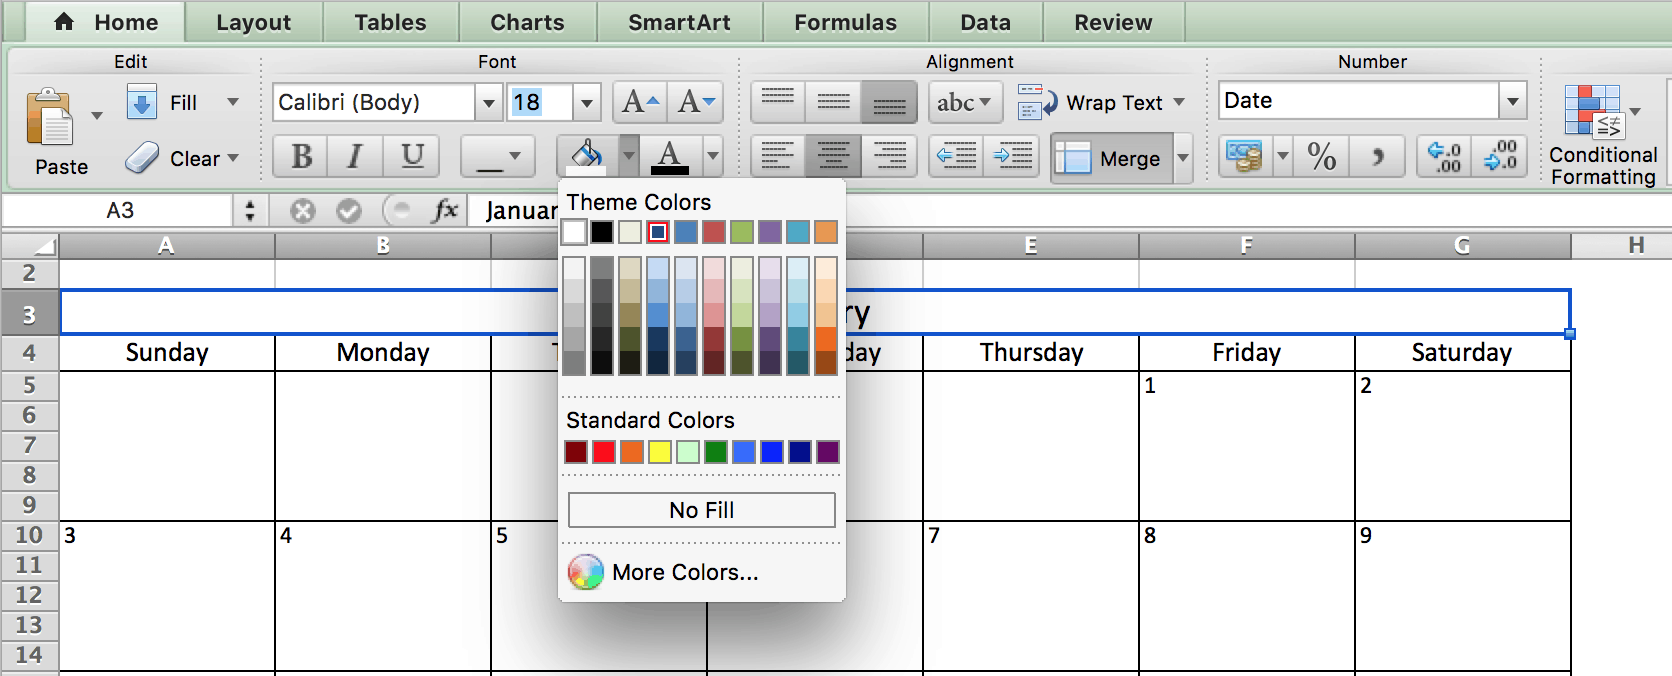 Ediblewildsus  Terrific Make A  Calendar In Excel Includes Free Template With Entrancing Choosing Colors  Calendar In Excel With Amusing Microsoft Excel  Free Download For Mac Also Creating A Checklist In Excel In Addition Excel For Osx And Vba If Excel As Well As Principal Component Analysis Excel Additionally Excel Vba With Statement From Smartsheetcom With Ediblewildsus  Entrancing Make A  Calendar In Excel Includes Free Template With Amusing Choosing Colors  Calendar In Excel And Terrific Microsoft Excel  Free Download For Mac Also Creating A Checklist In Excel In Addition Excel For Osx From Smartsheetcom